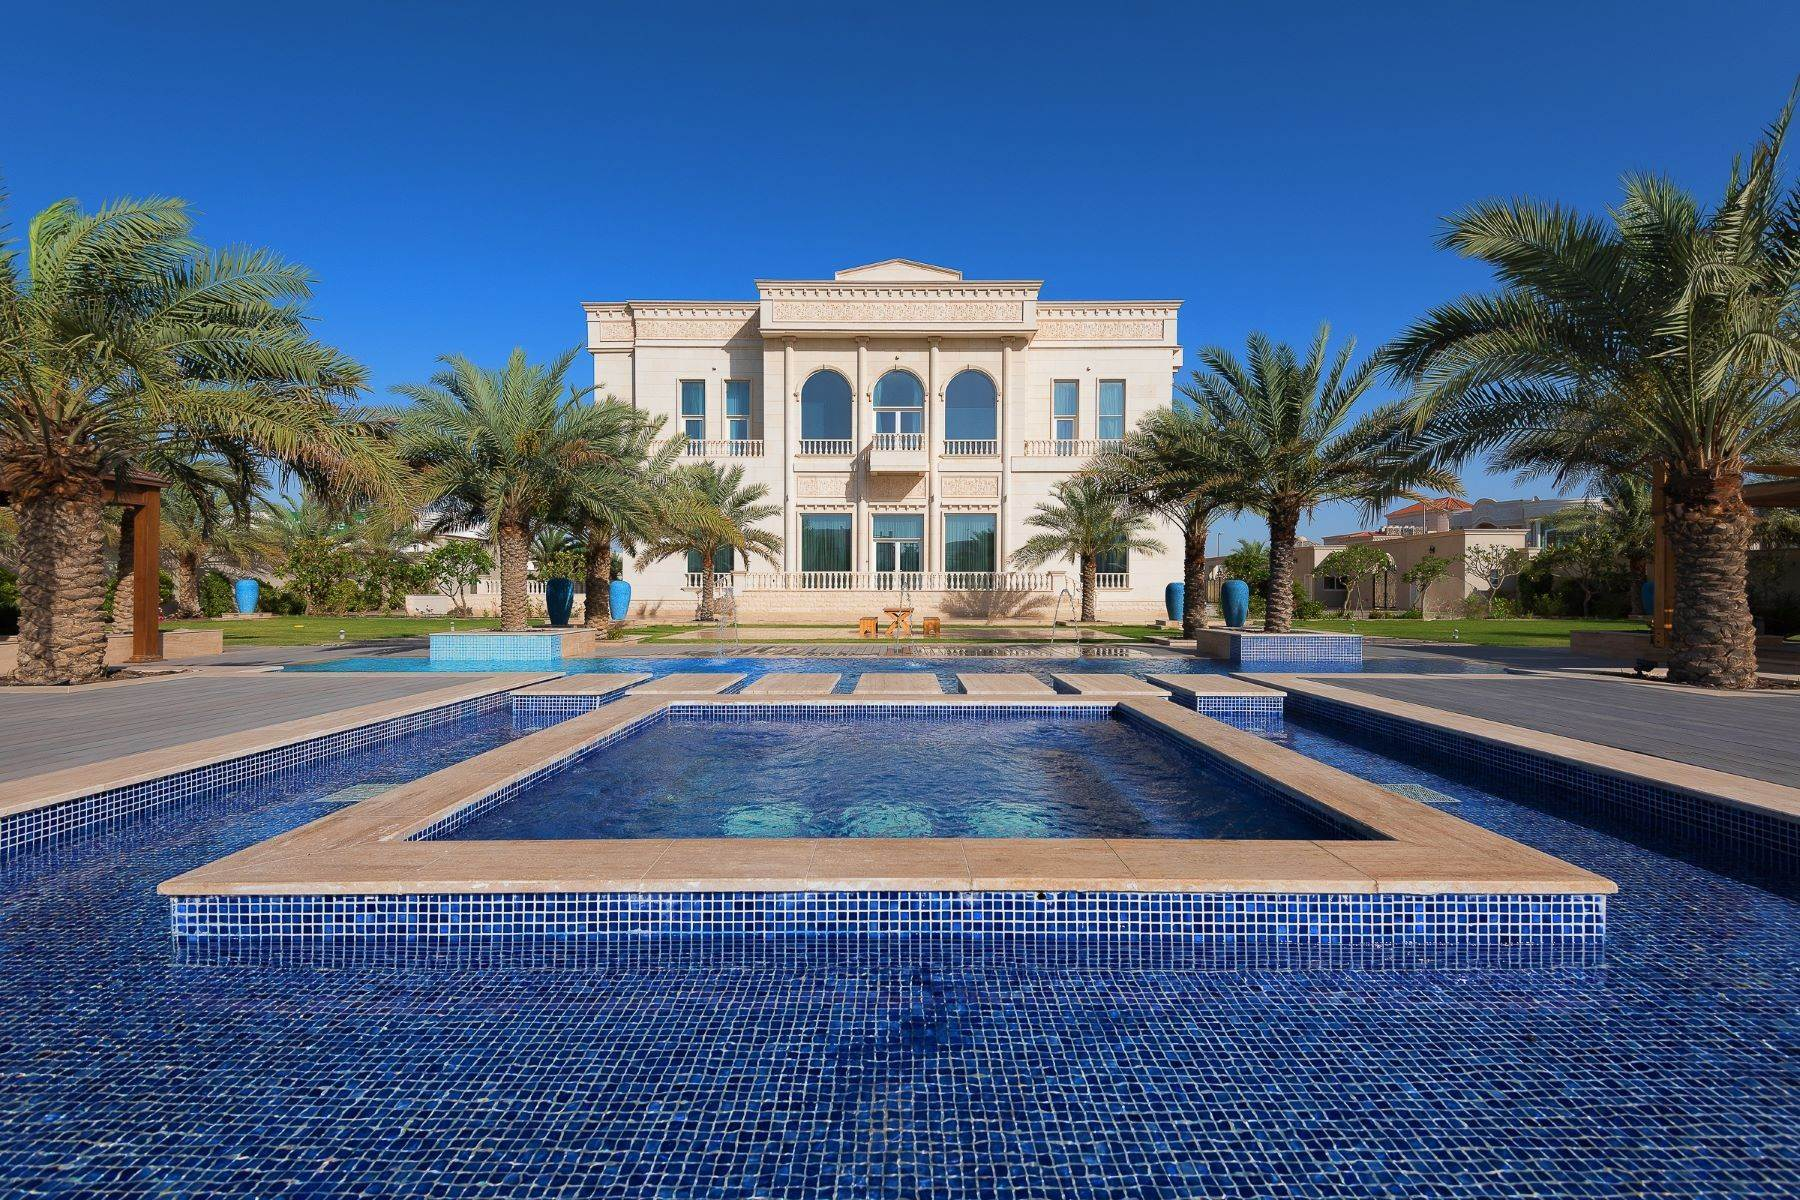 Single Family Homes for Sale at Ultra luxurious Jumeirah Palace villa Dubai, United Arab Emirates